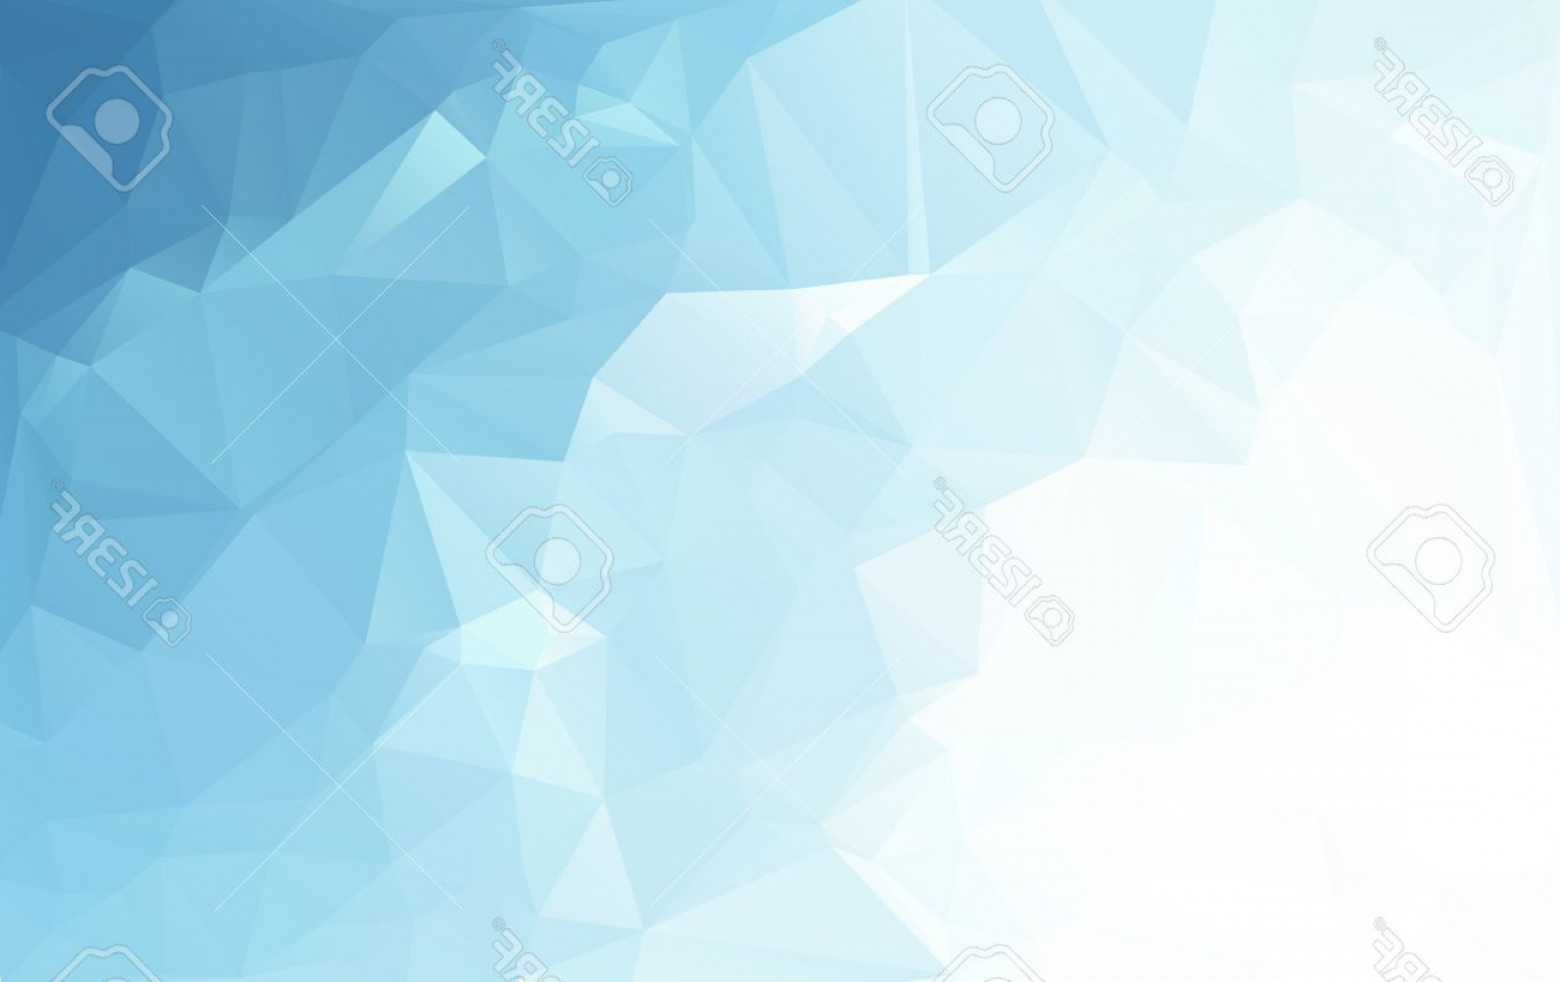 Blue White Background Vector: Photostock Vector Blue White Light Polygonal Mosaic Background Vector Illustration Creative Business Design Templates